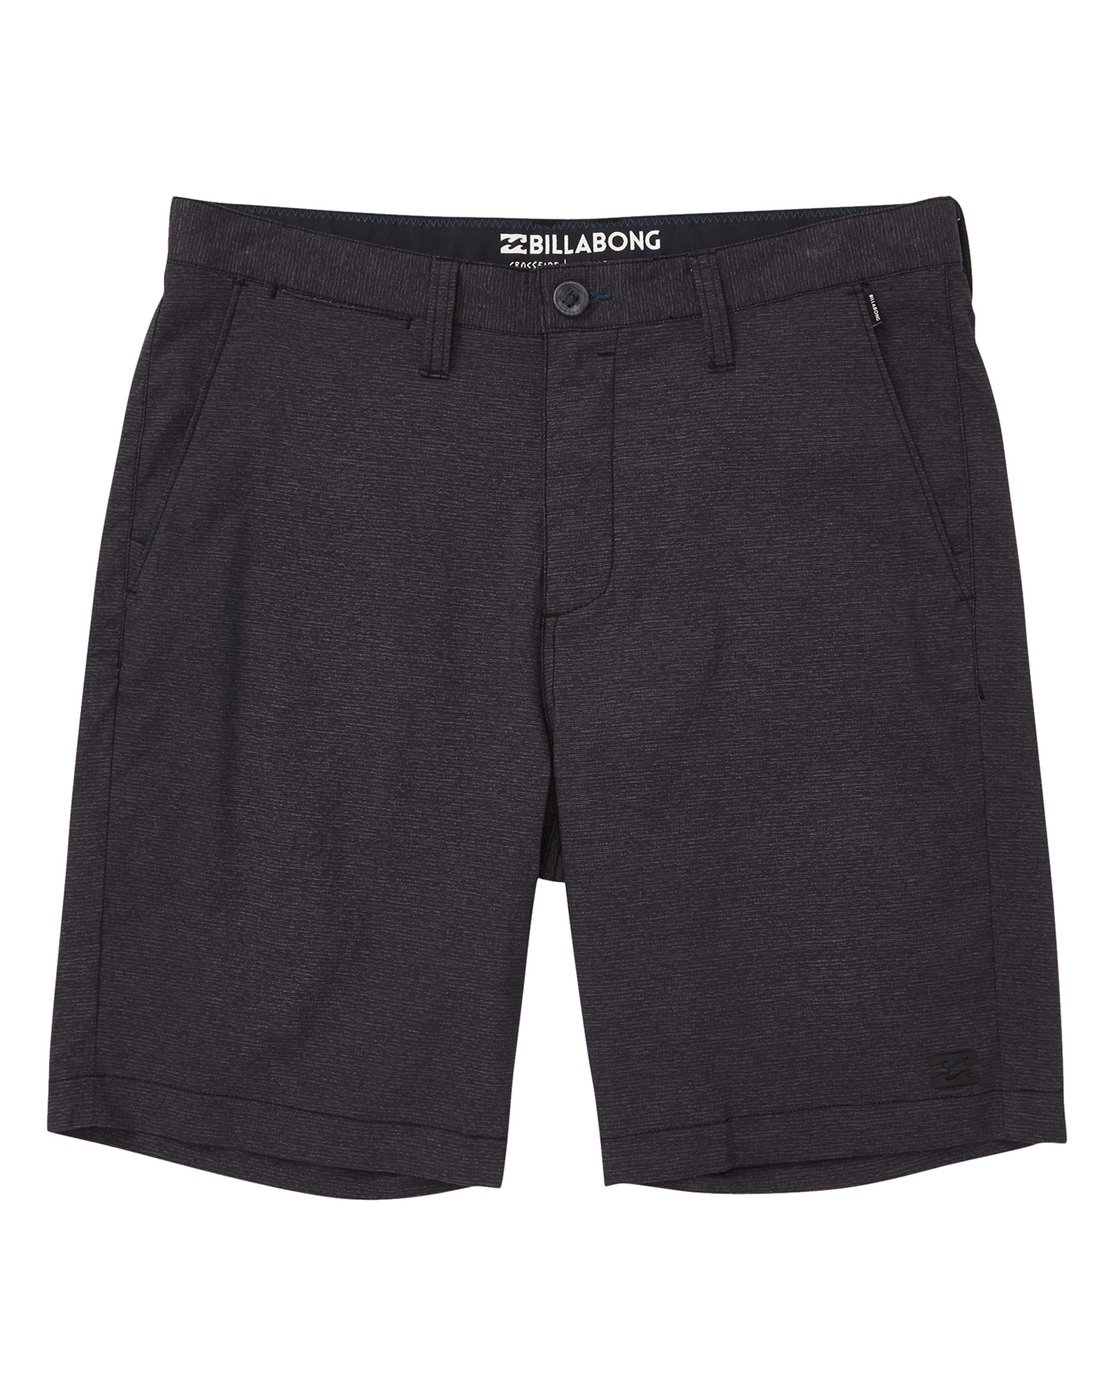 BILLABONG Boys Water Repellent Crossfire Hybrid Shorts in Stretch Fabric $45